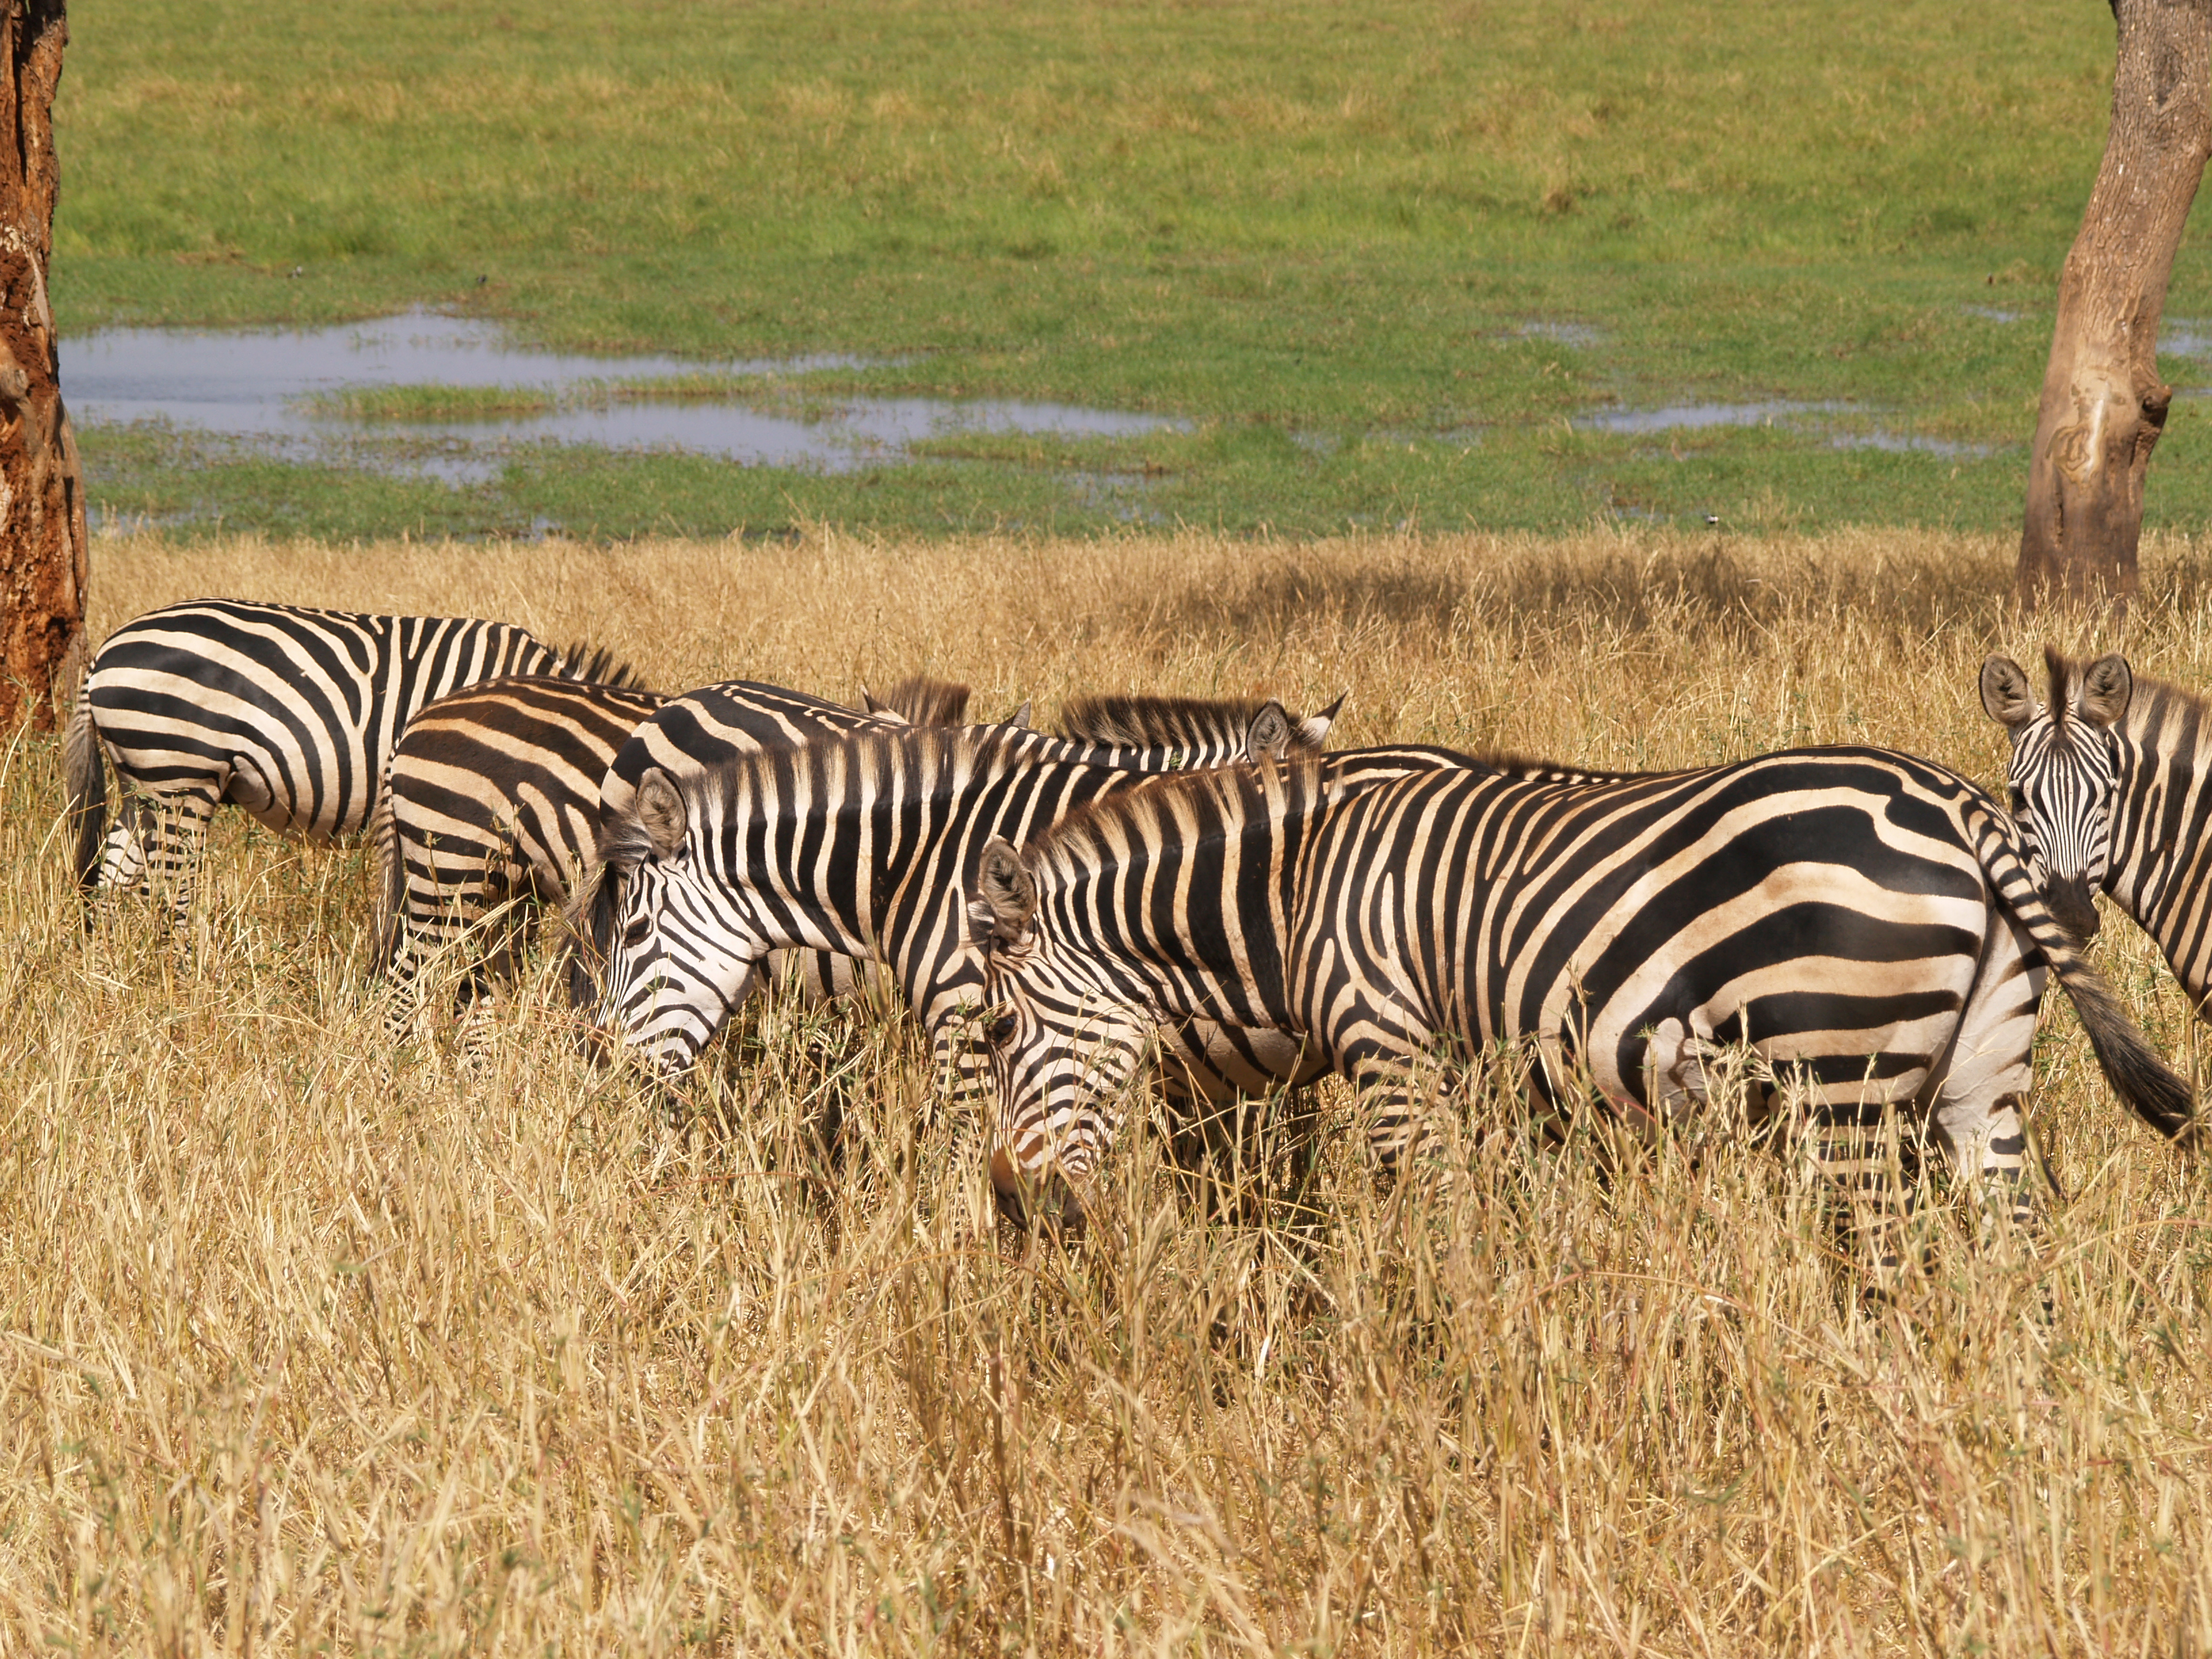 zebras by the marsh